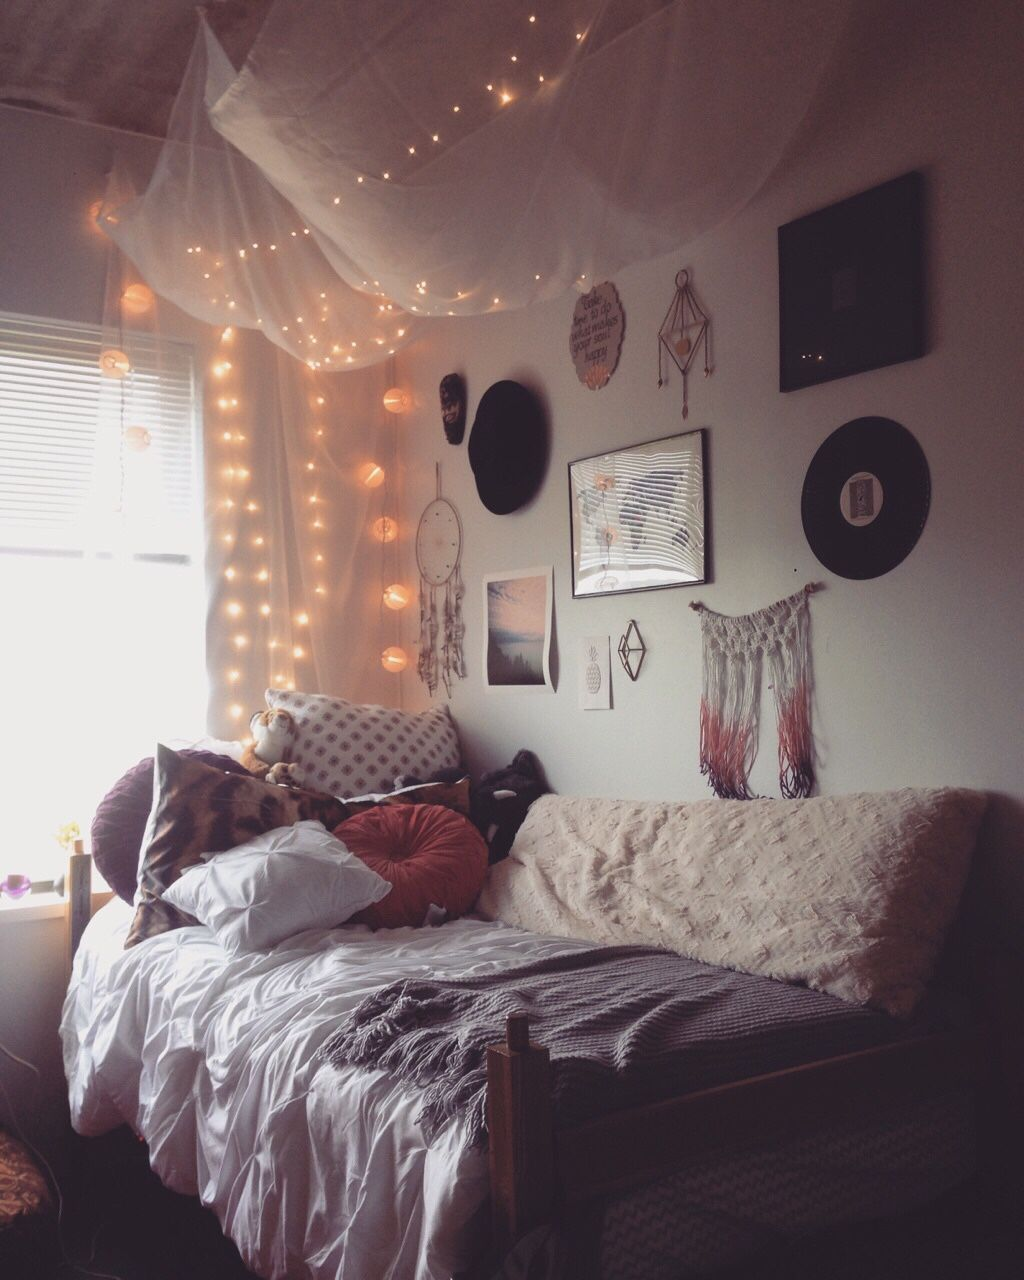 Fairy Themed Bedroom Decorations: Roominspirationsx: Fall Themed Rooms